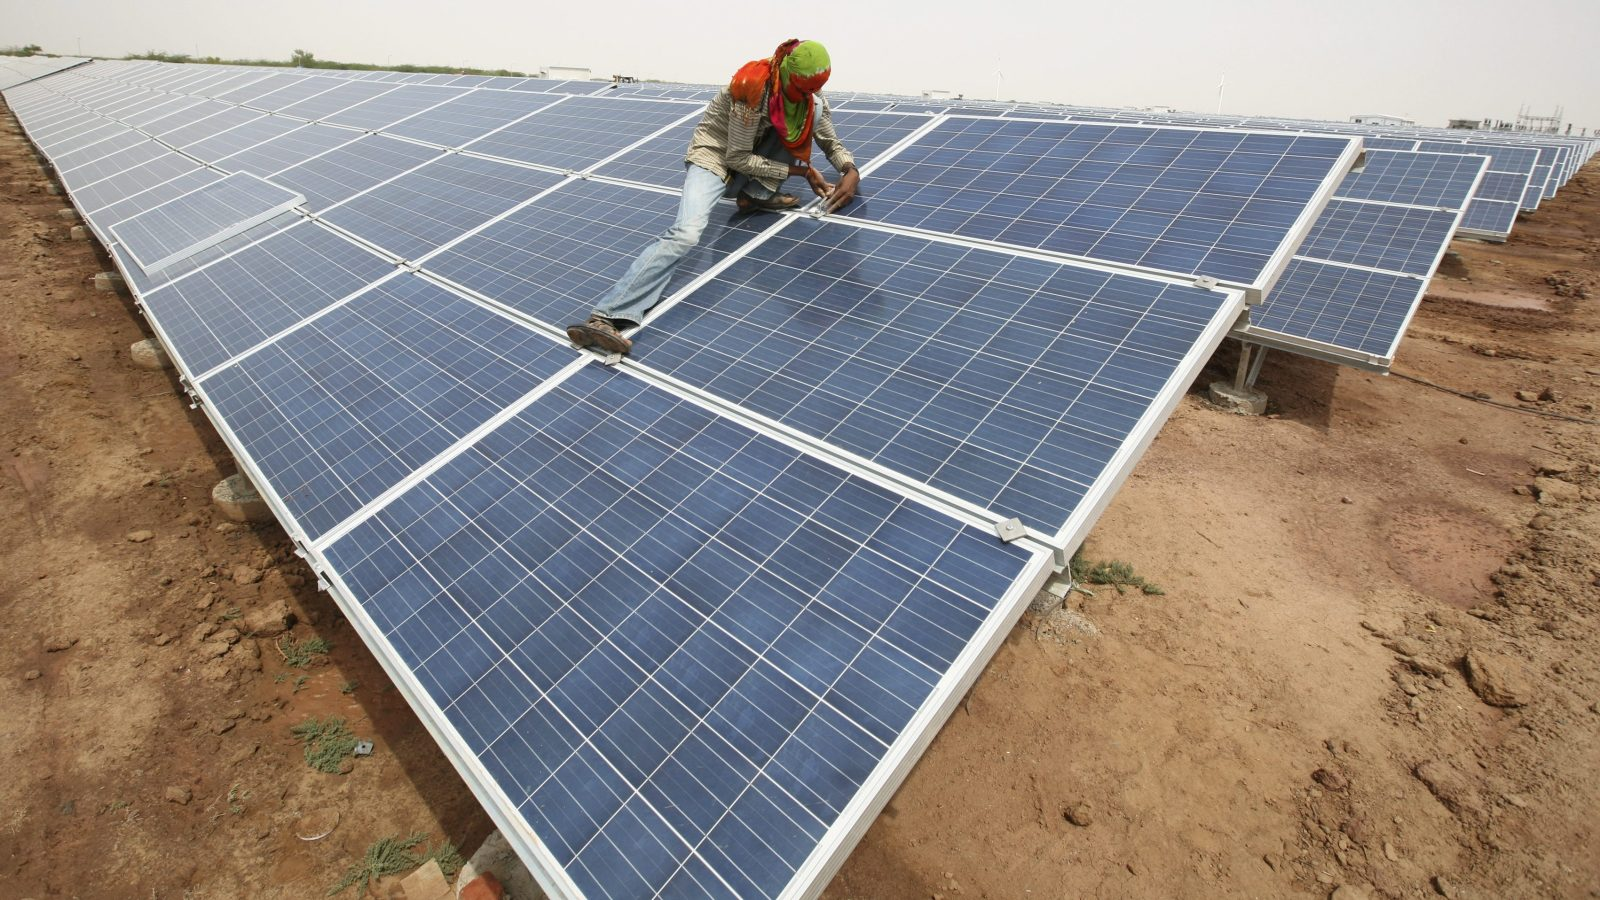 qz.com - Michael J. Coren - The era of subsidies for wind and solar may be ending far too soon